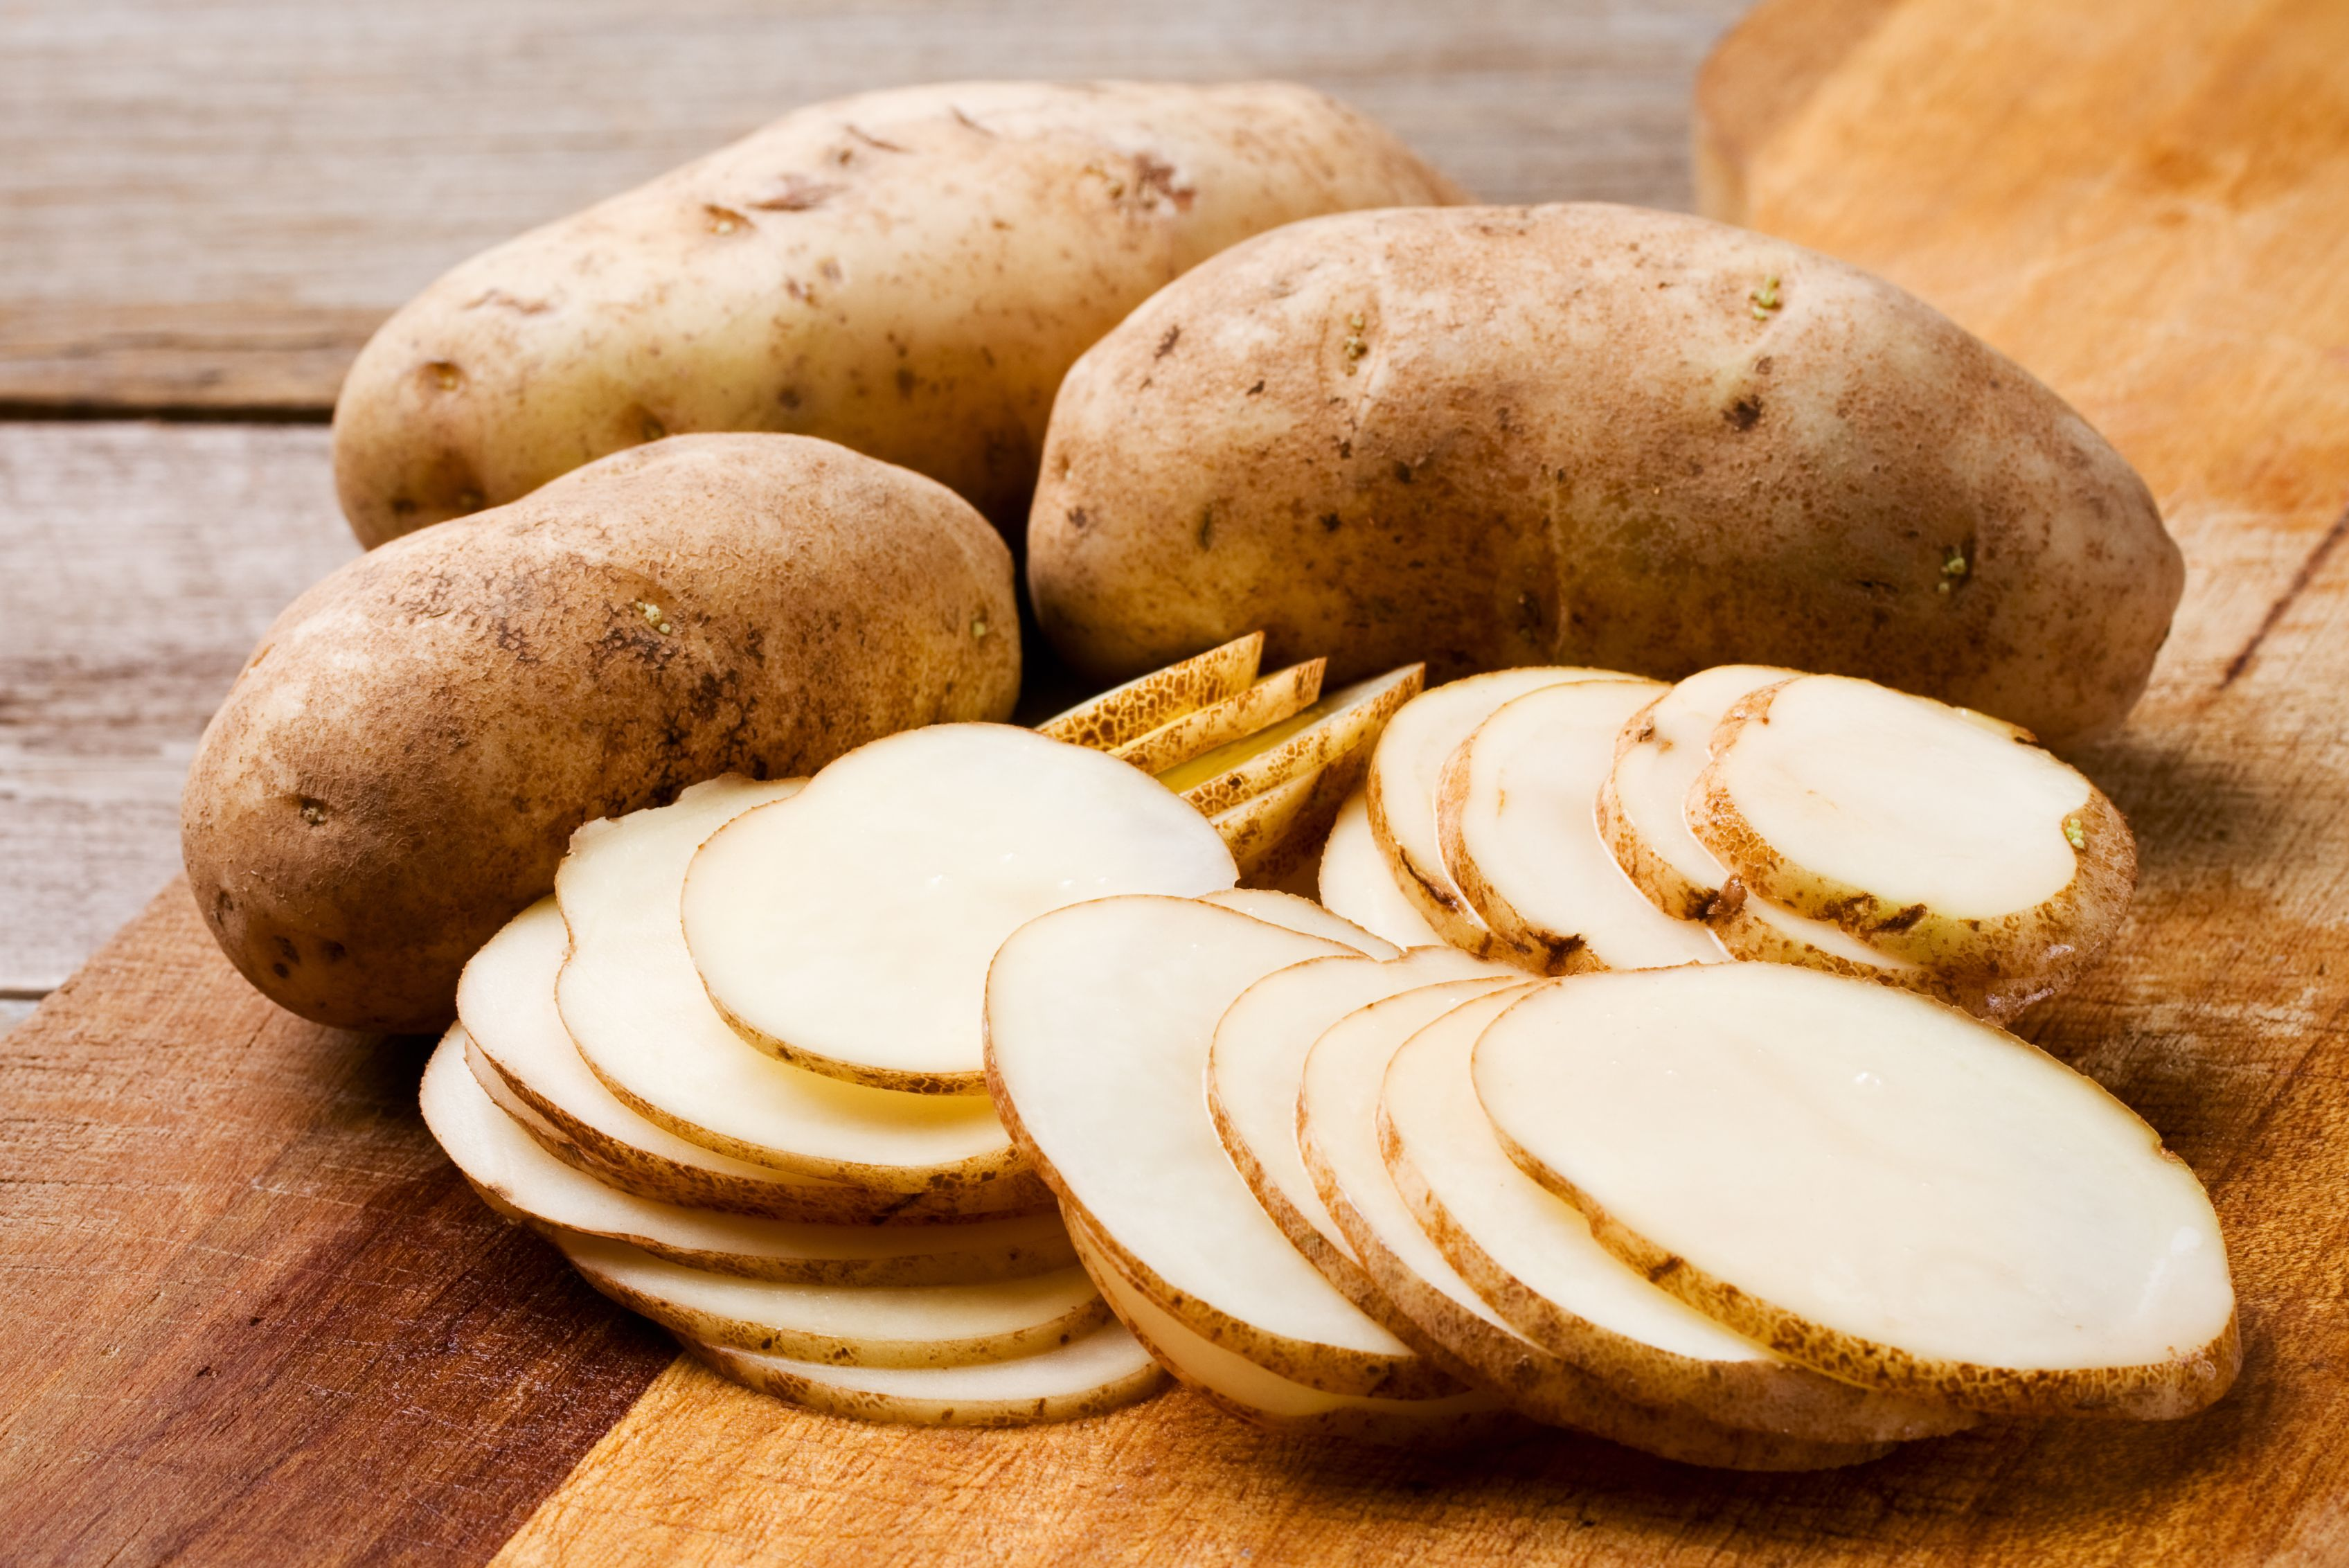 Are Potatoes Healthy? Nutritionists Say They Could Help You Lose Weight